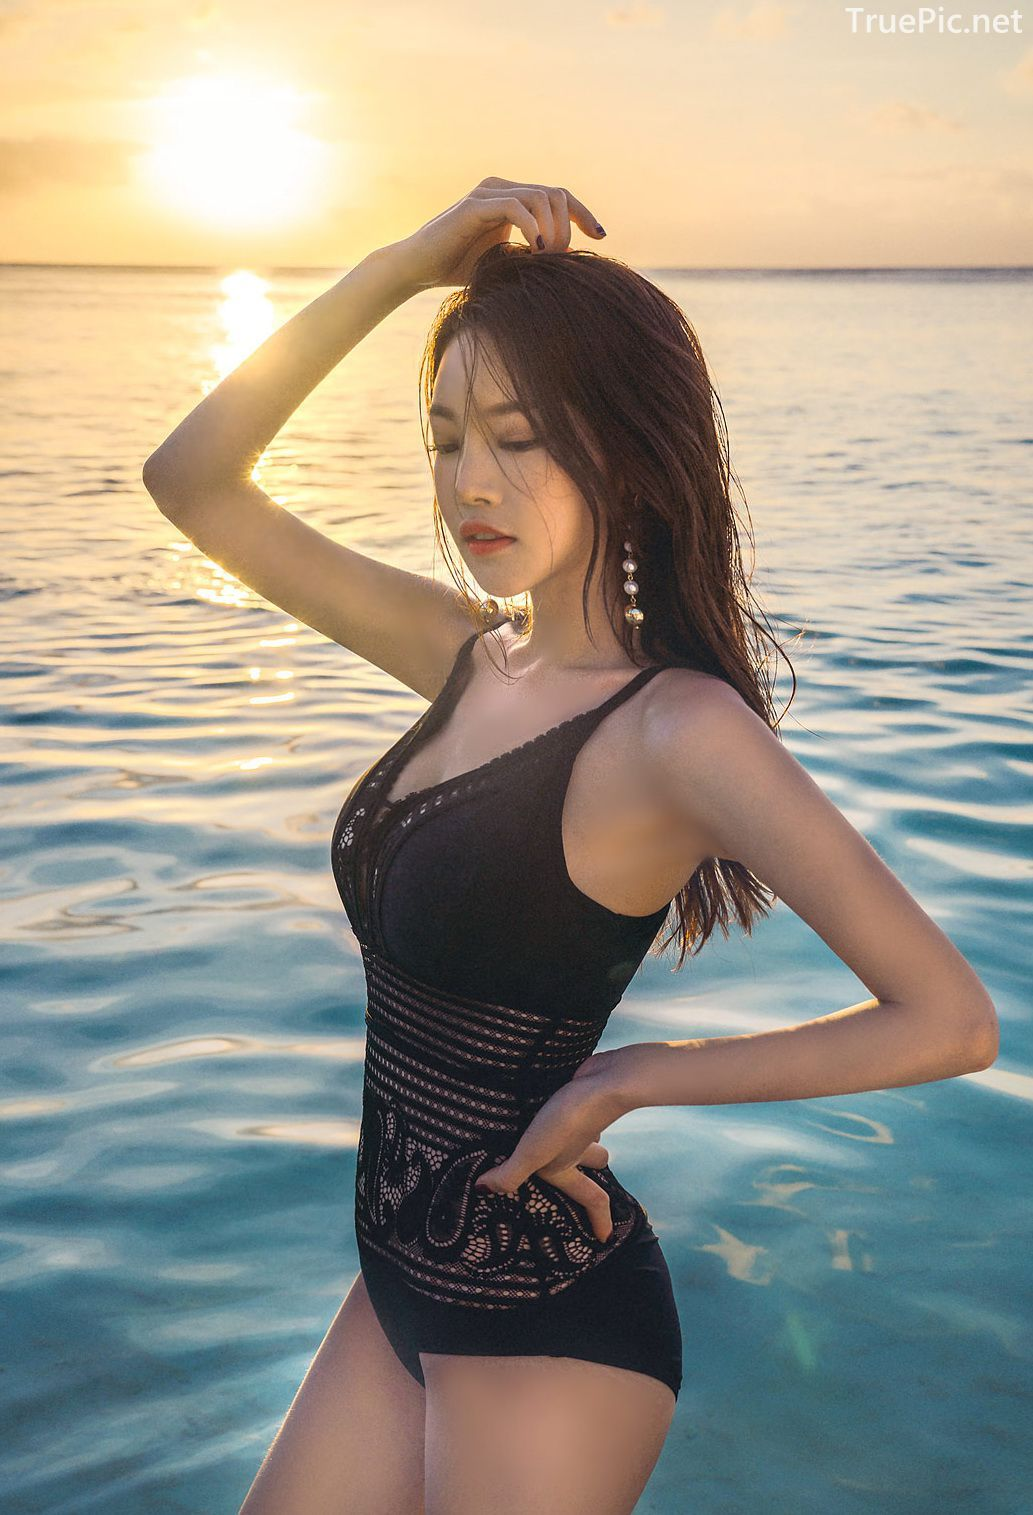 Park Jeong Yoon - Can't Help Falling - Korean swimsuit and model - Picture 3